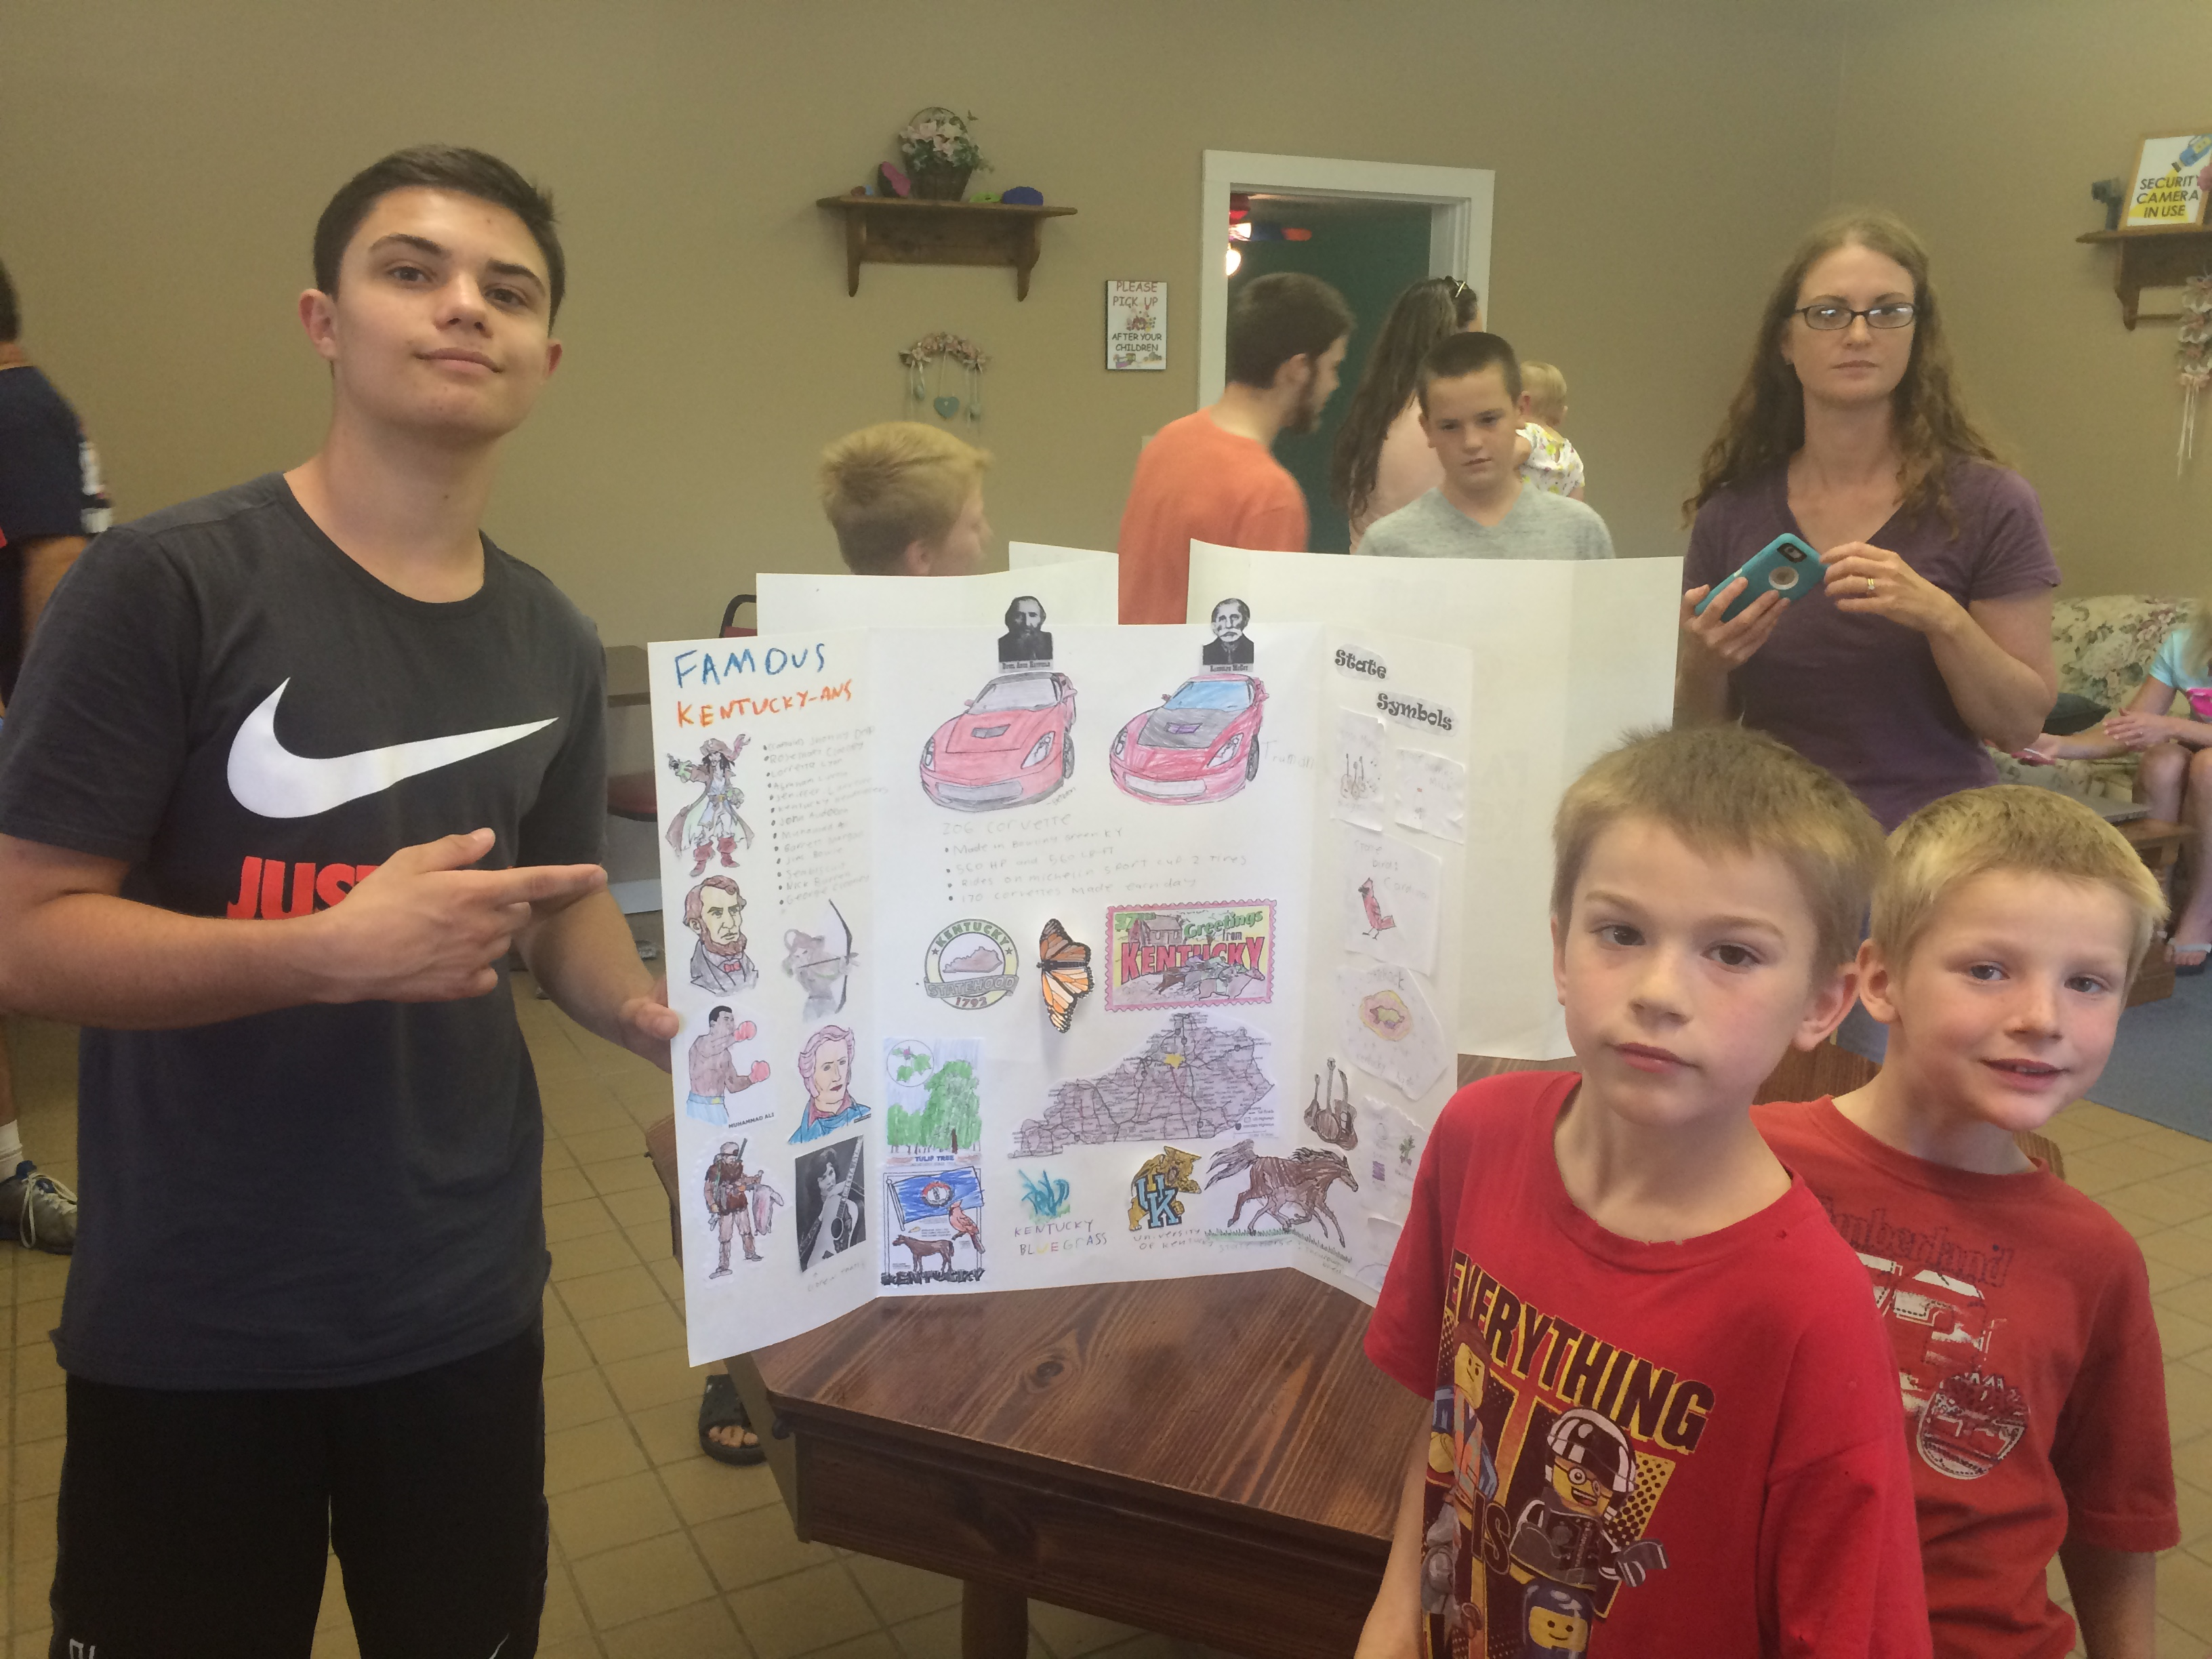 Gordon, Camden, and Bennett with their project.